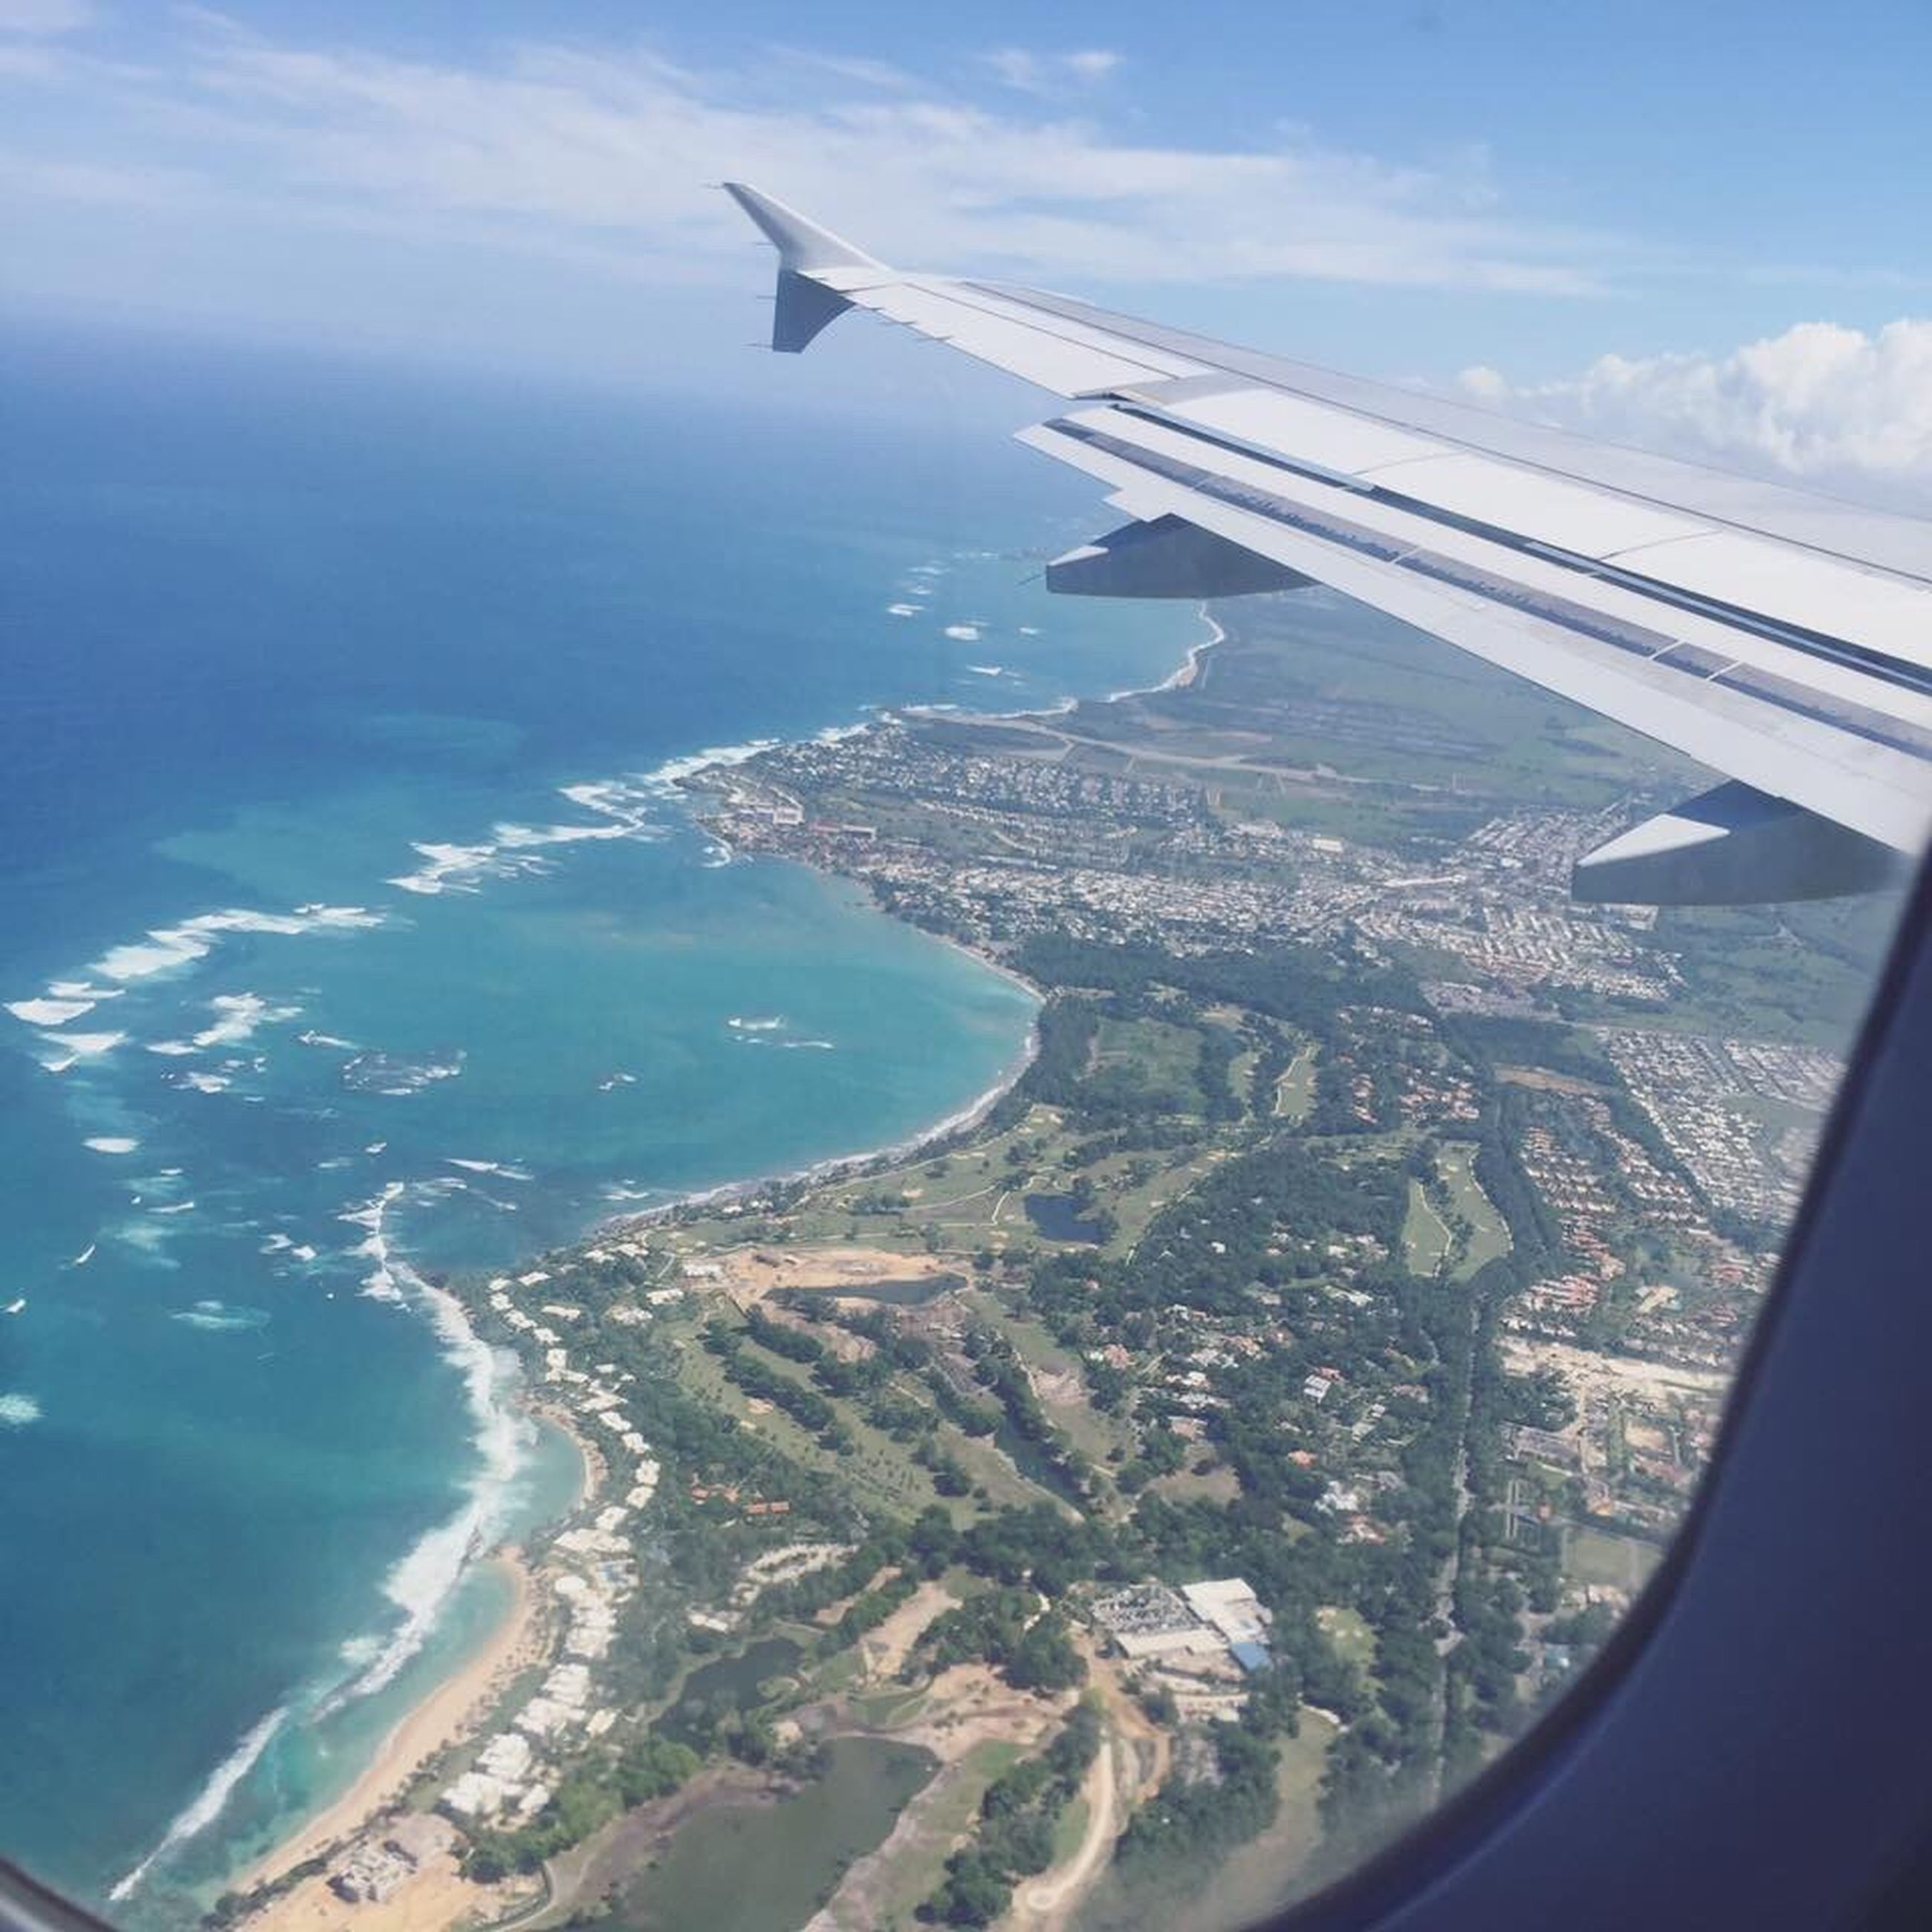 airplane, transportation, aerial view, aircraft wing, air vehicle, flying, mode of transport, sea, part of, cropped, travel, mid-air, sky, water, scenics, journey, on the move, landscape, airplane wing, nature